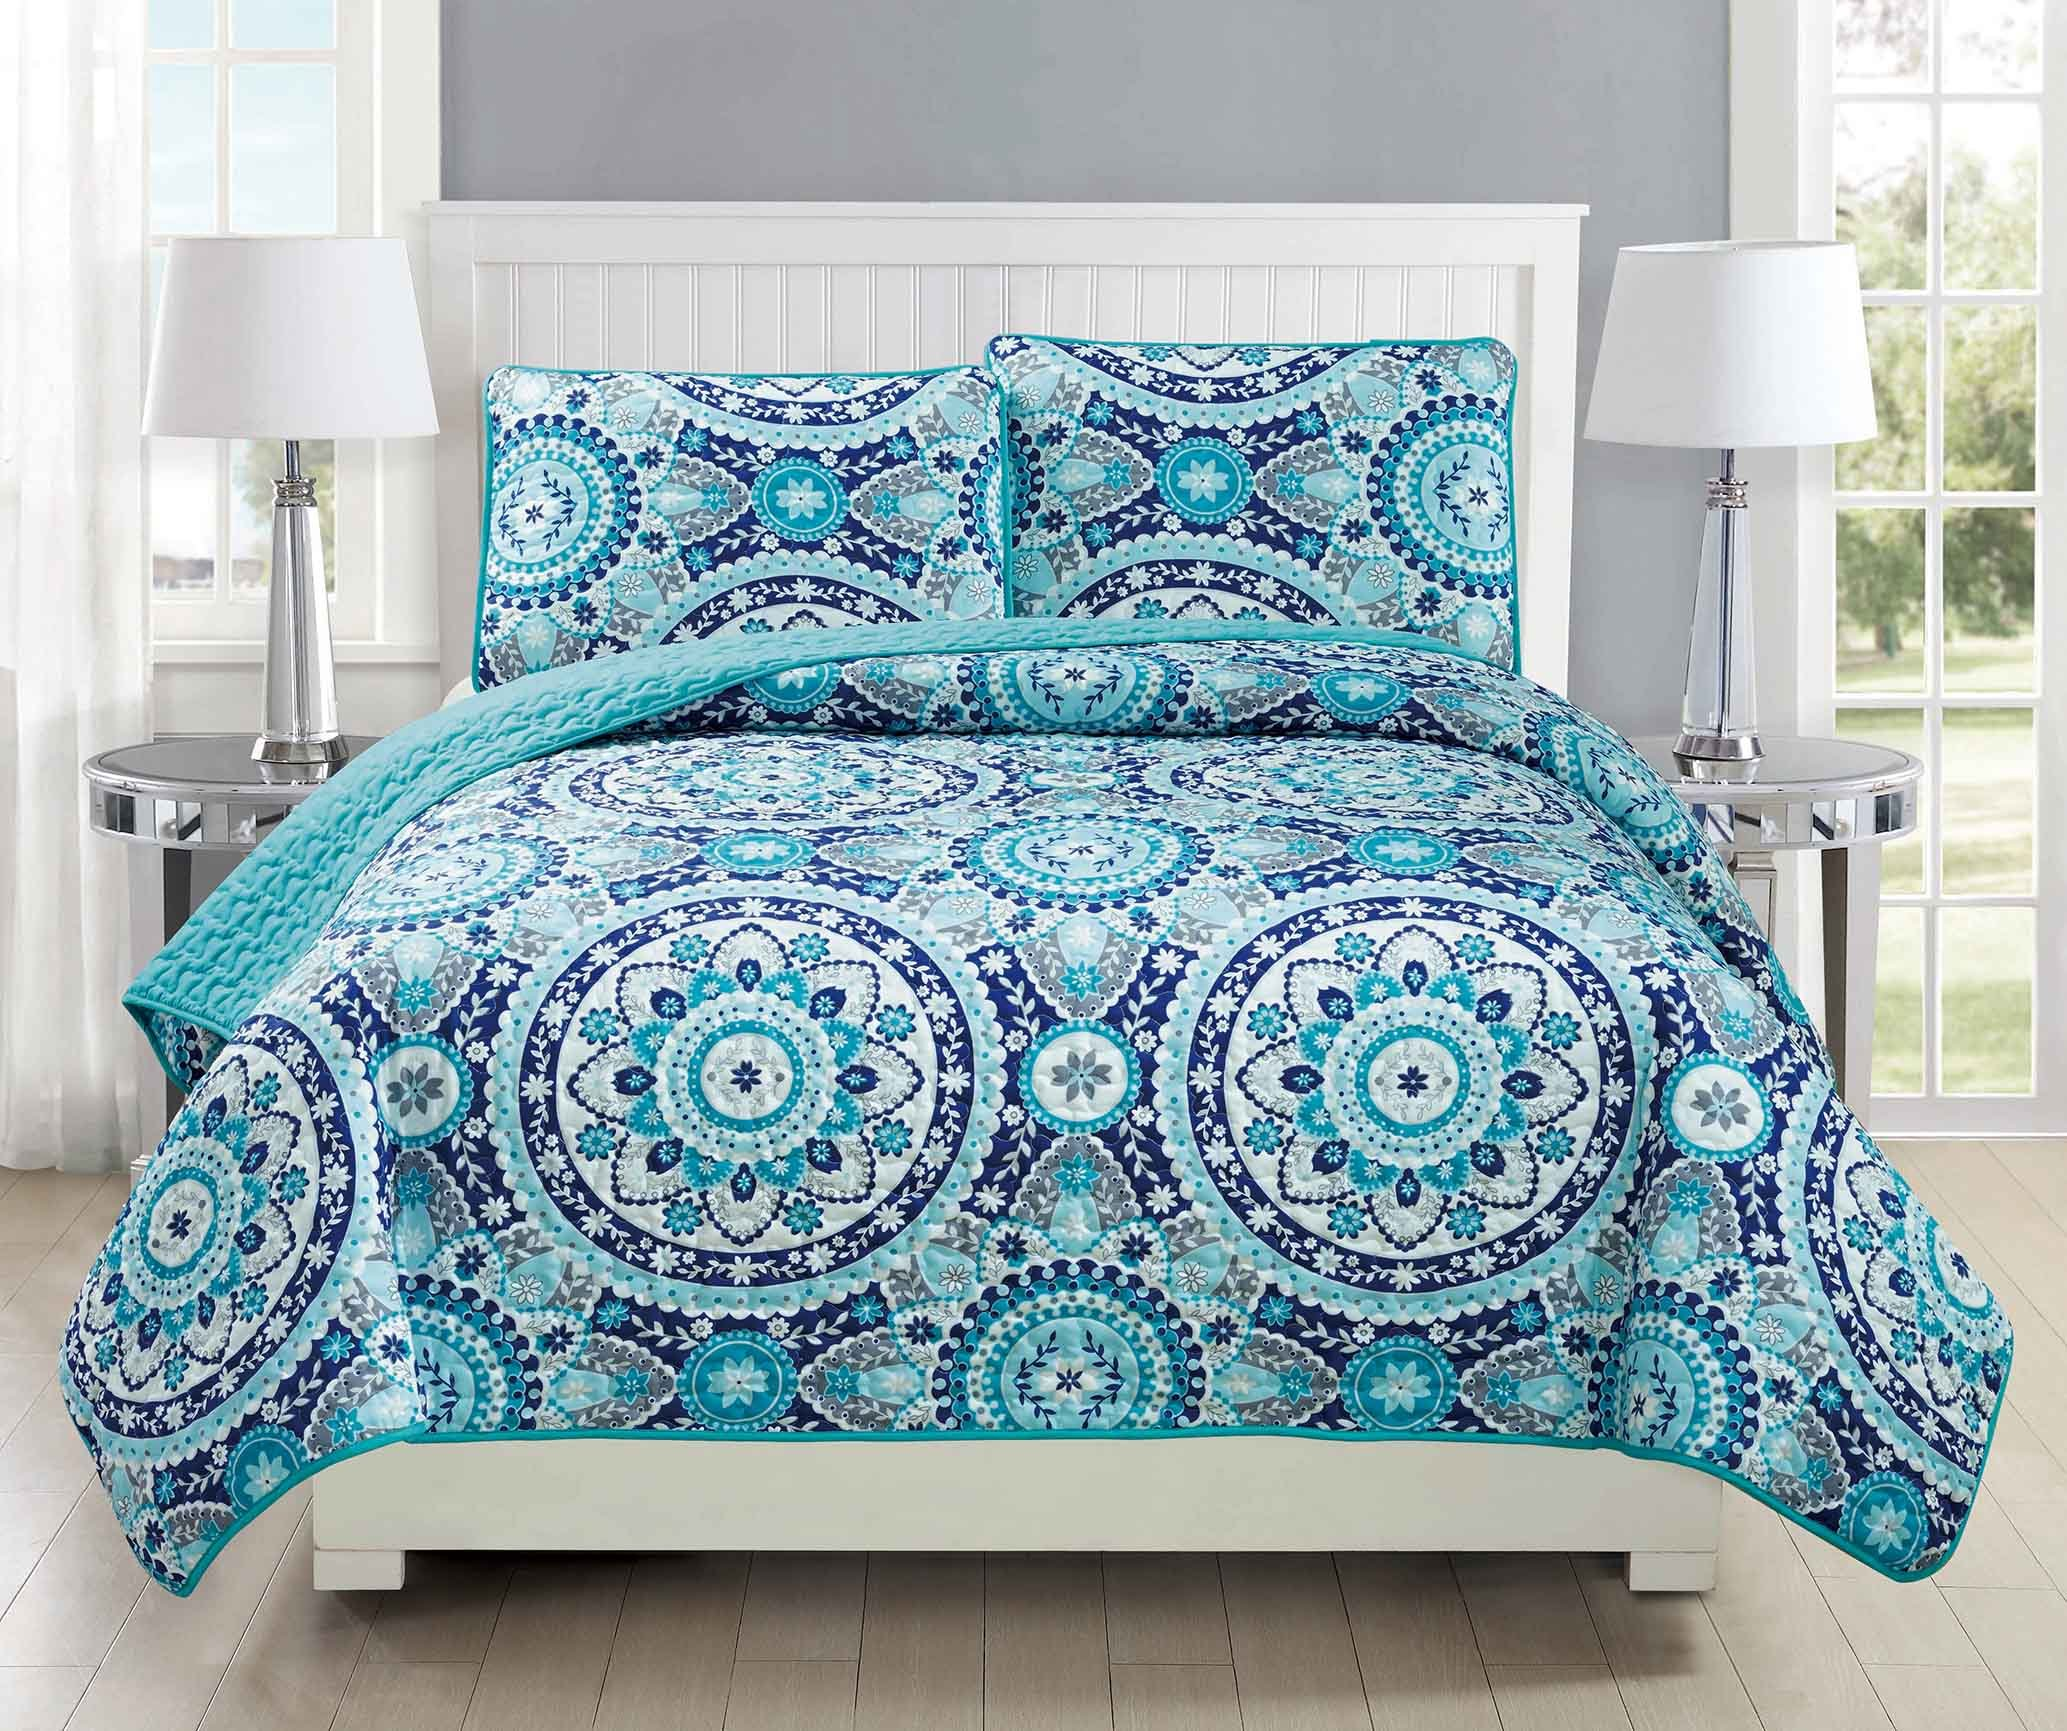 Mk Collection 3pc Bedspread coverlet quilted Floral Turquoise Teel Blue Grey Over Size New #185 King/California King Over Size by MK Home